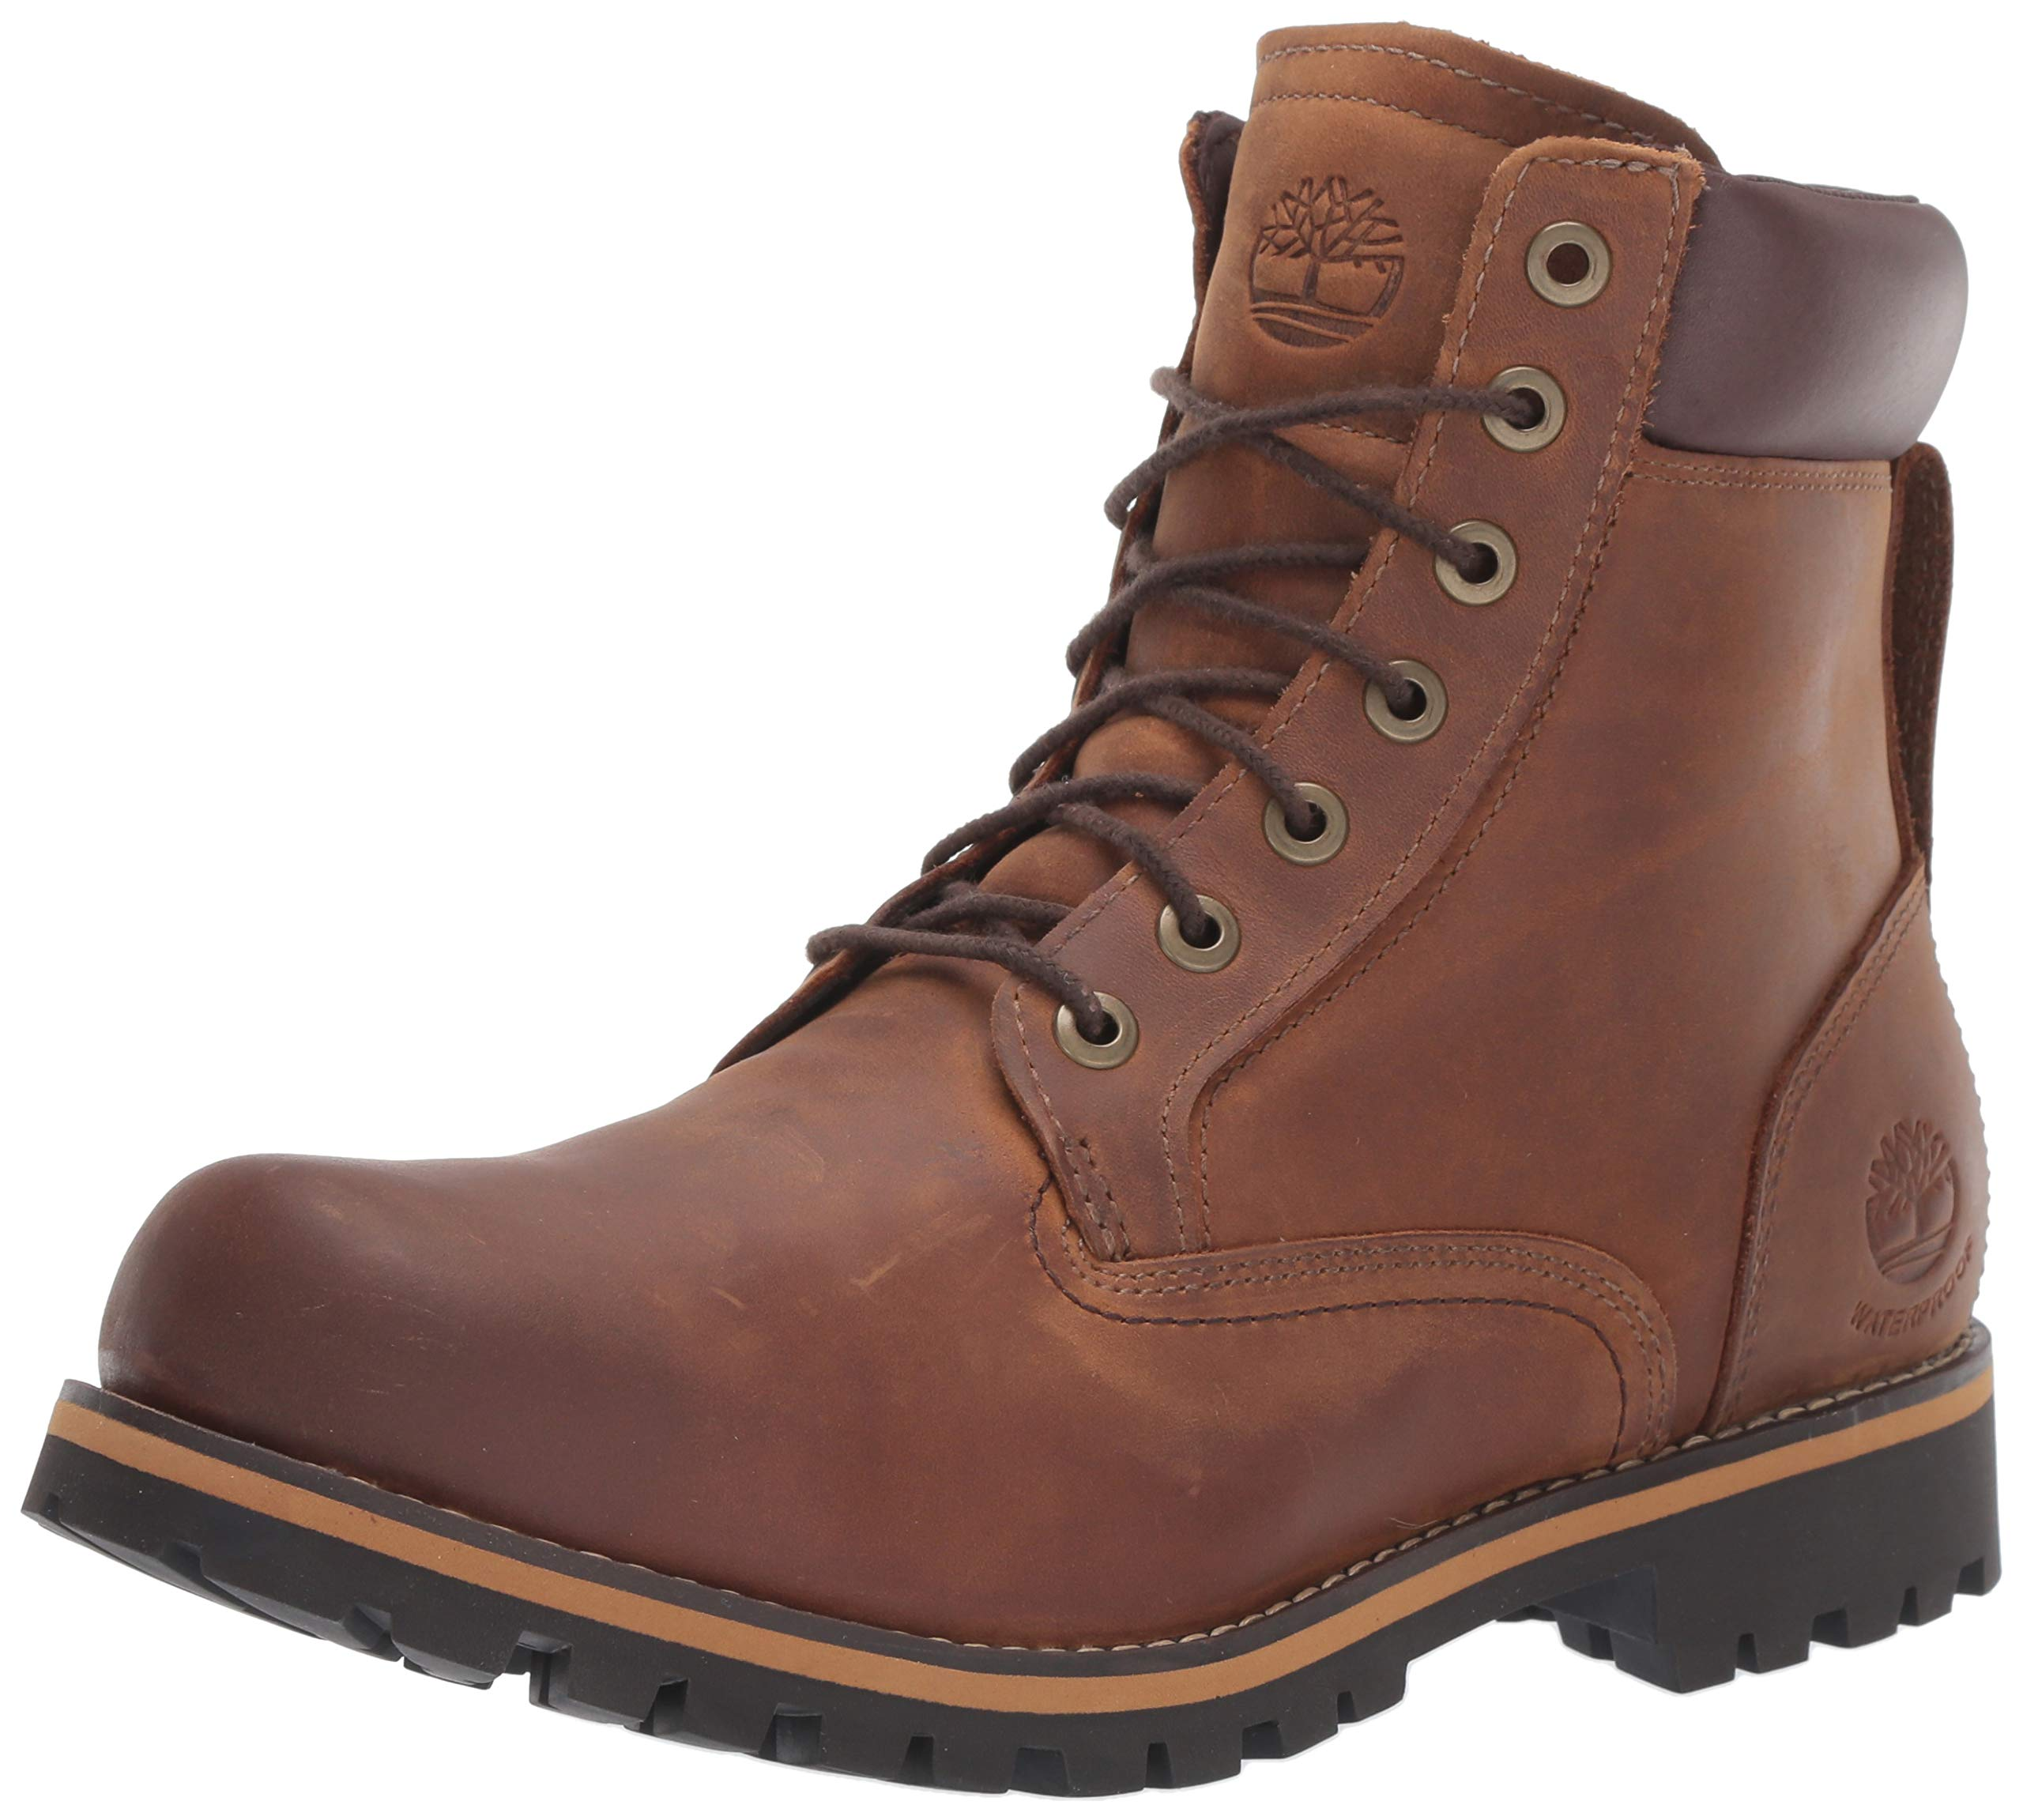 Timberland Men's Earthkeepers Rugged Boot, Medium brown full grain, 8 W US